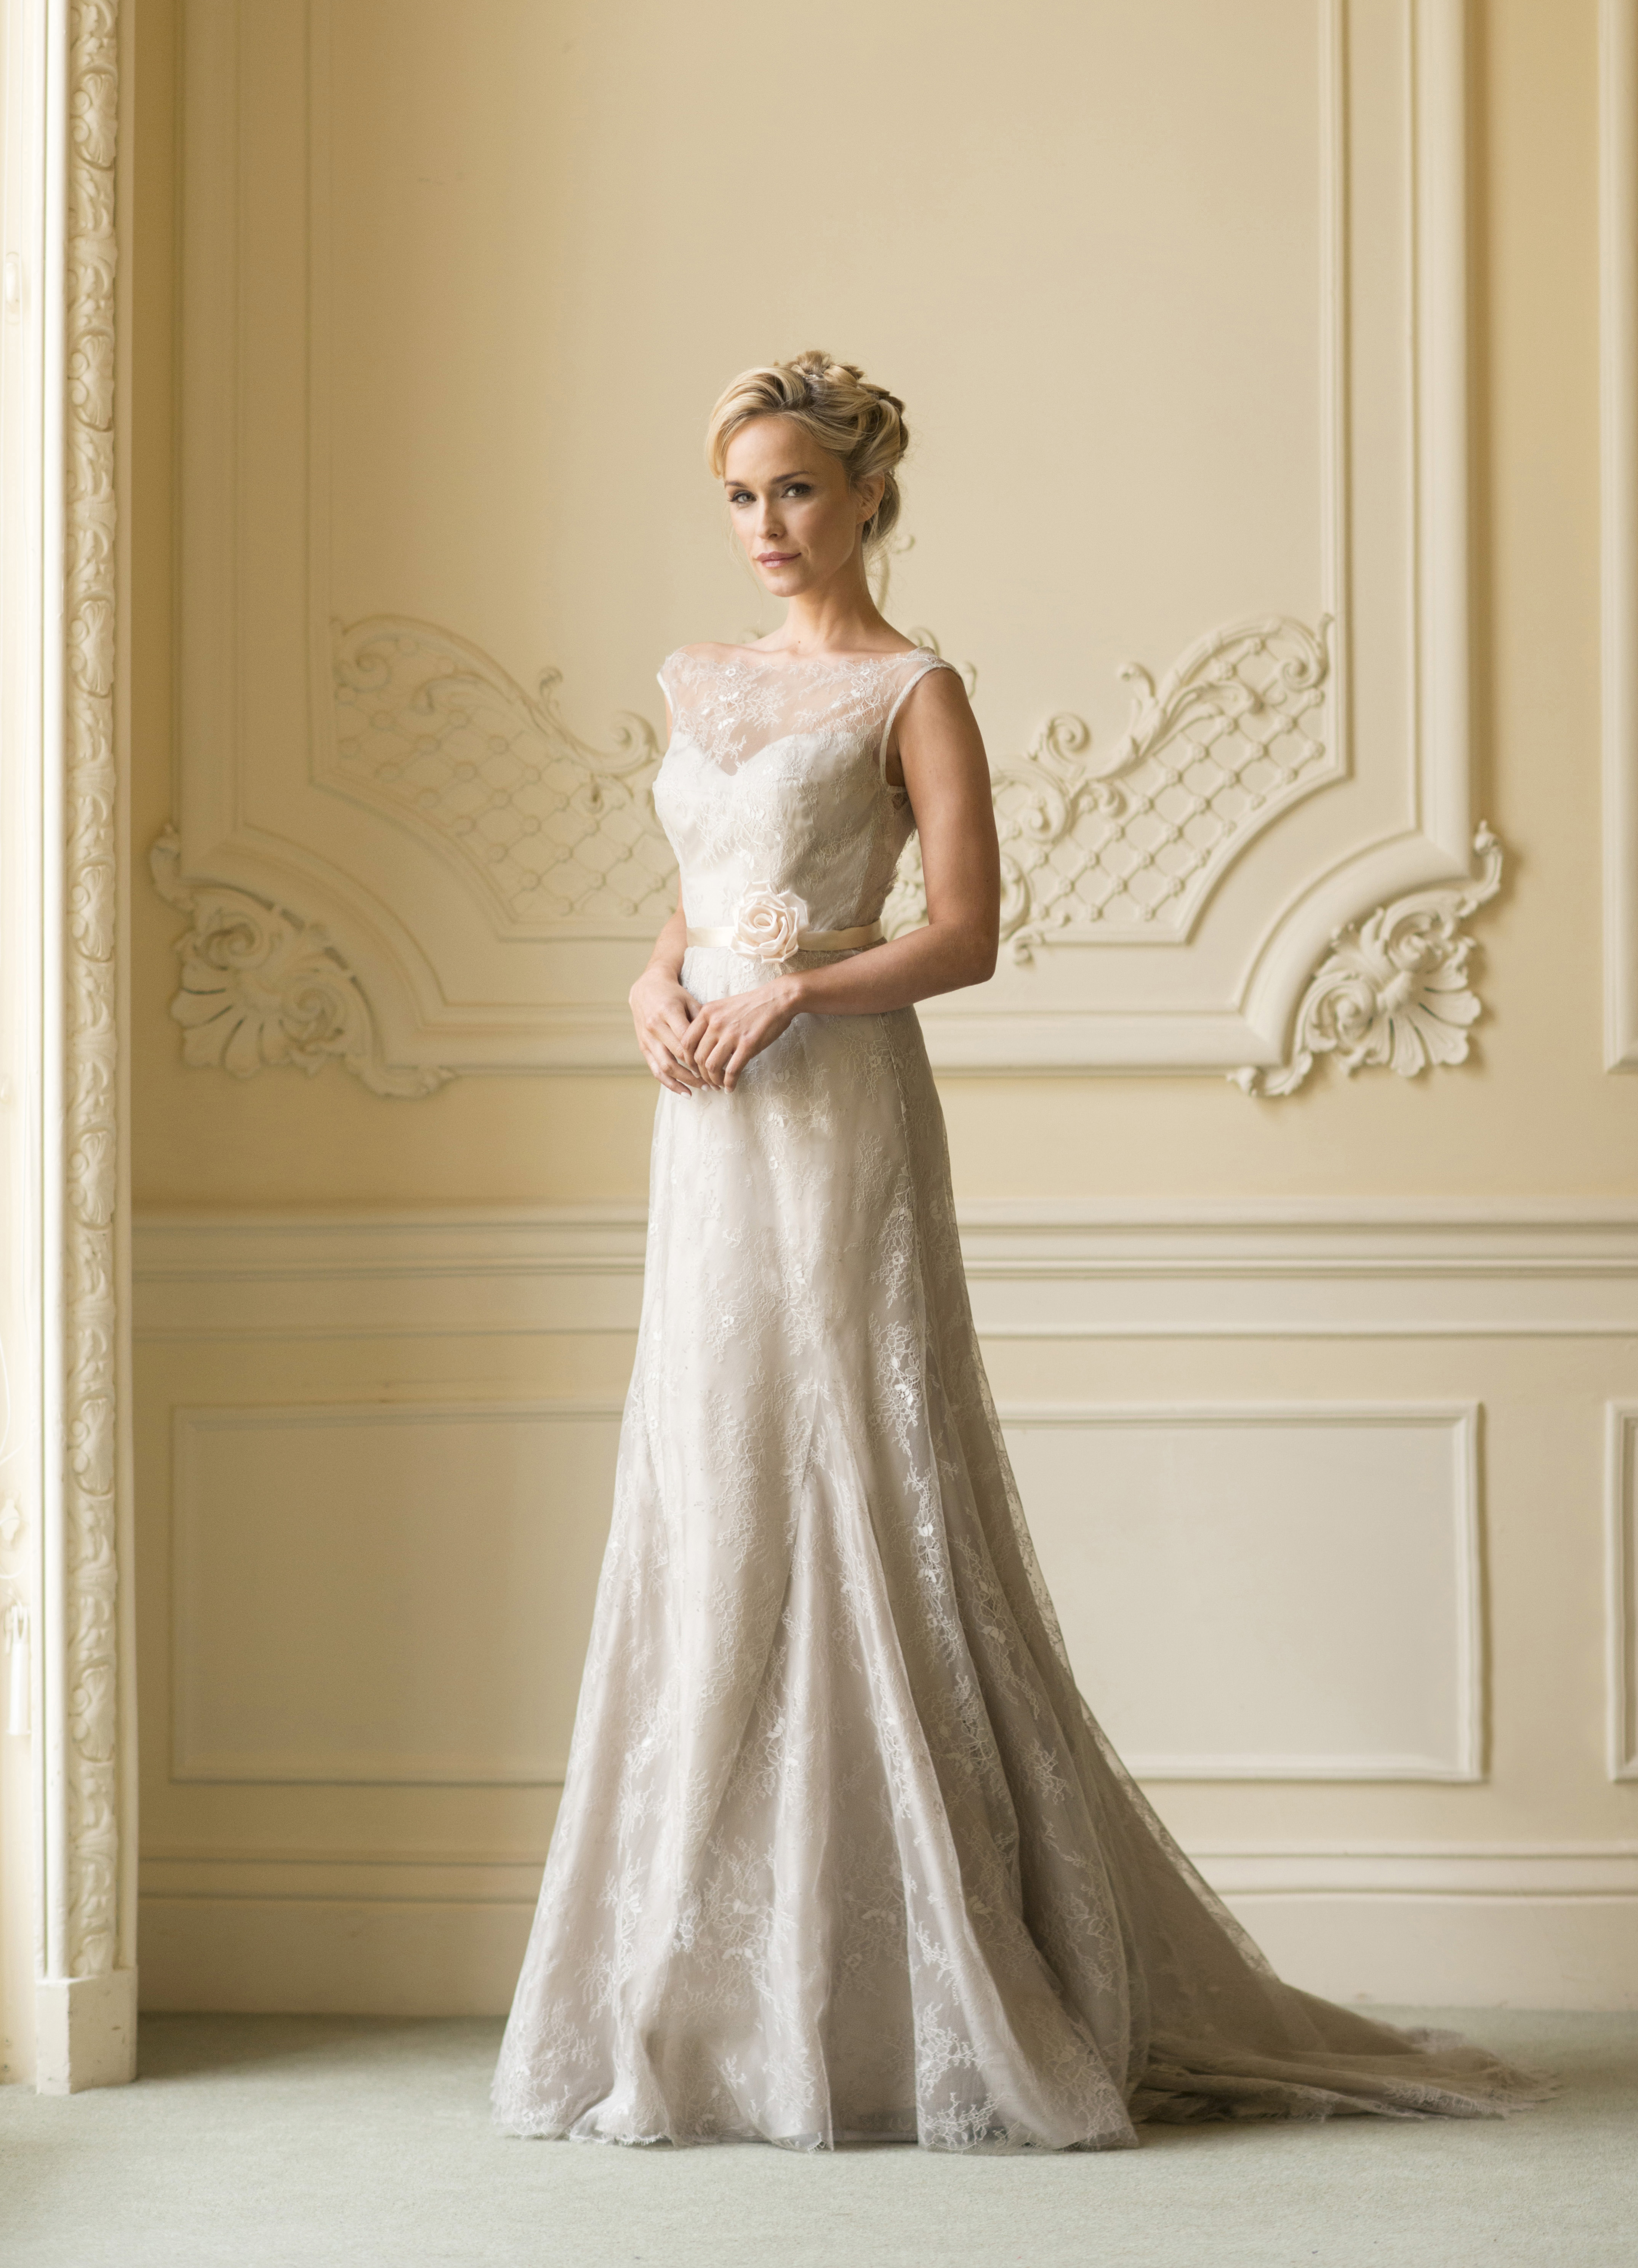 Design By <a Hrefnaomineoh: Pale Lilac Wedding Dress At Reisefeber.org